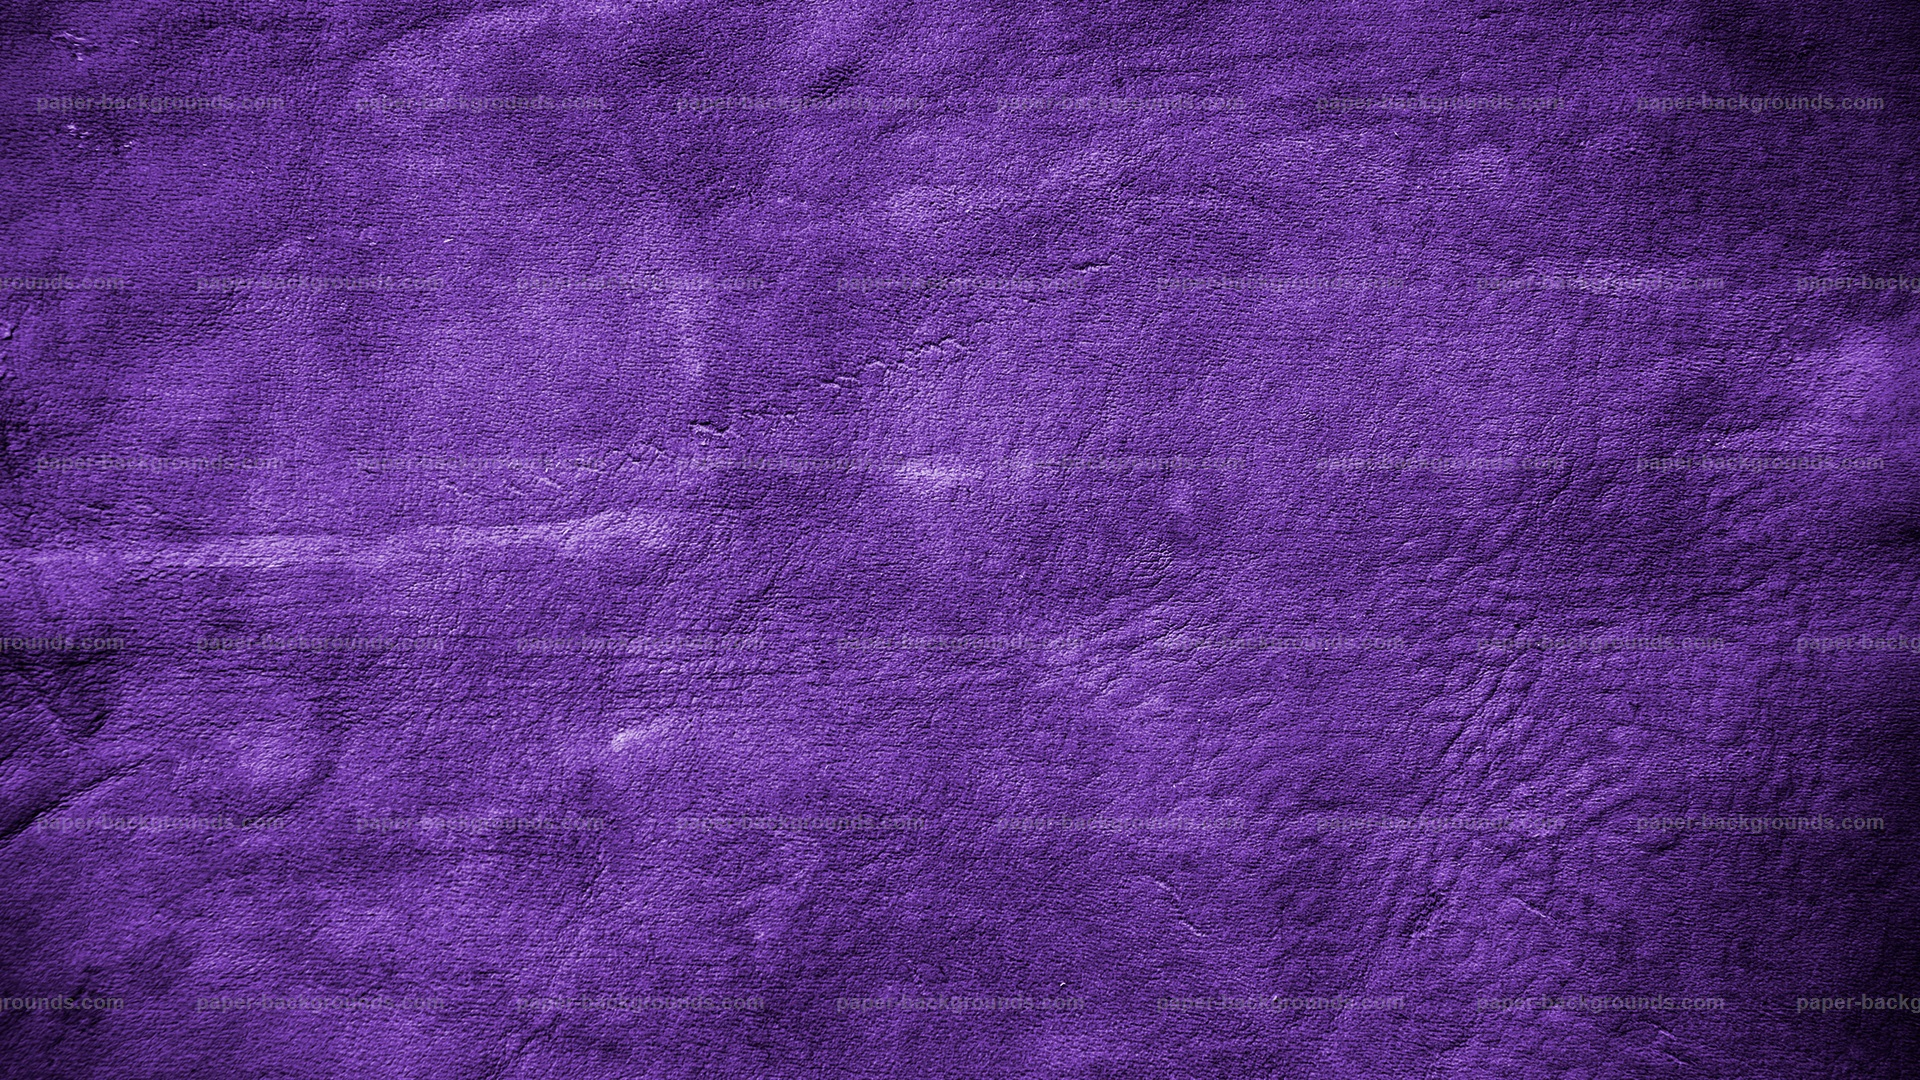 lavender vintage background - photo #33